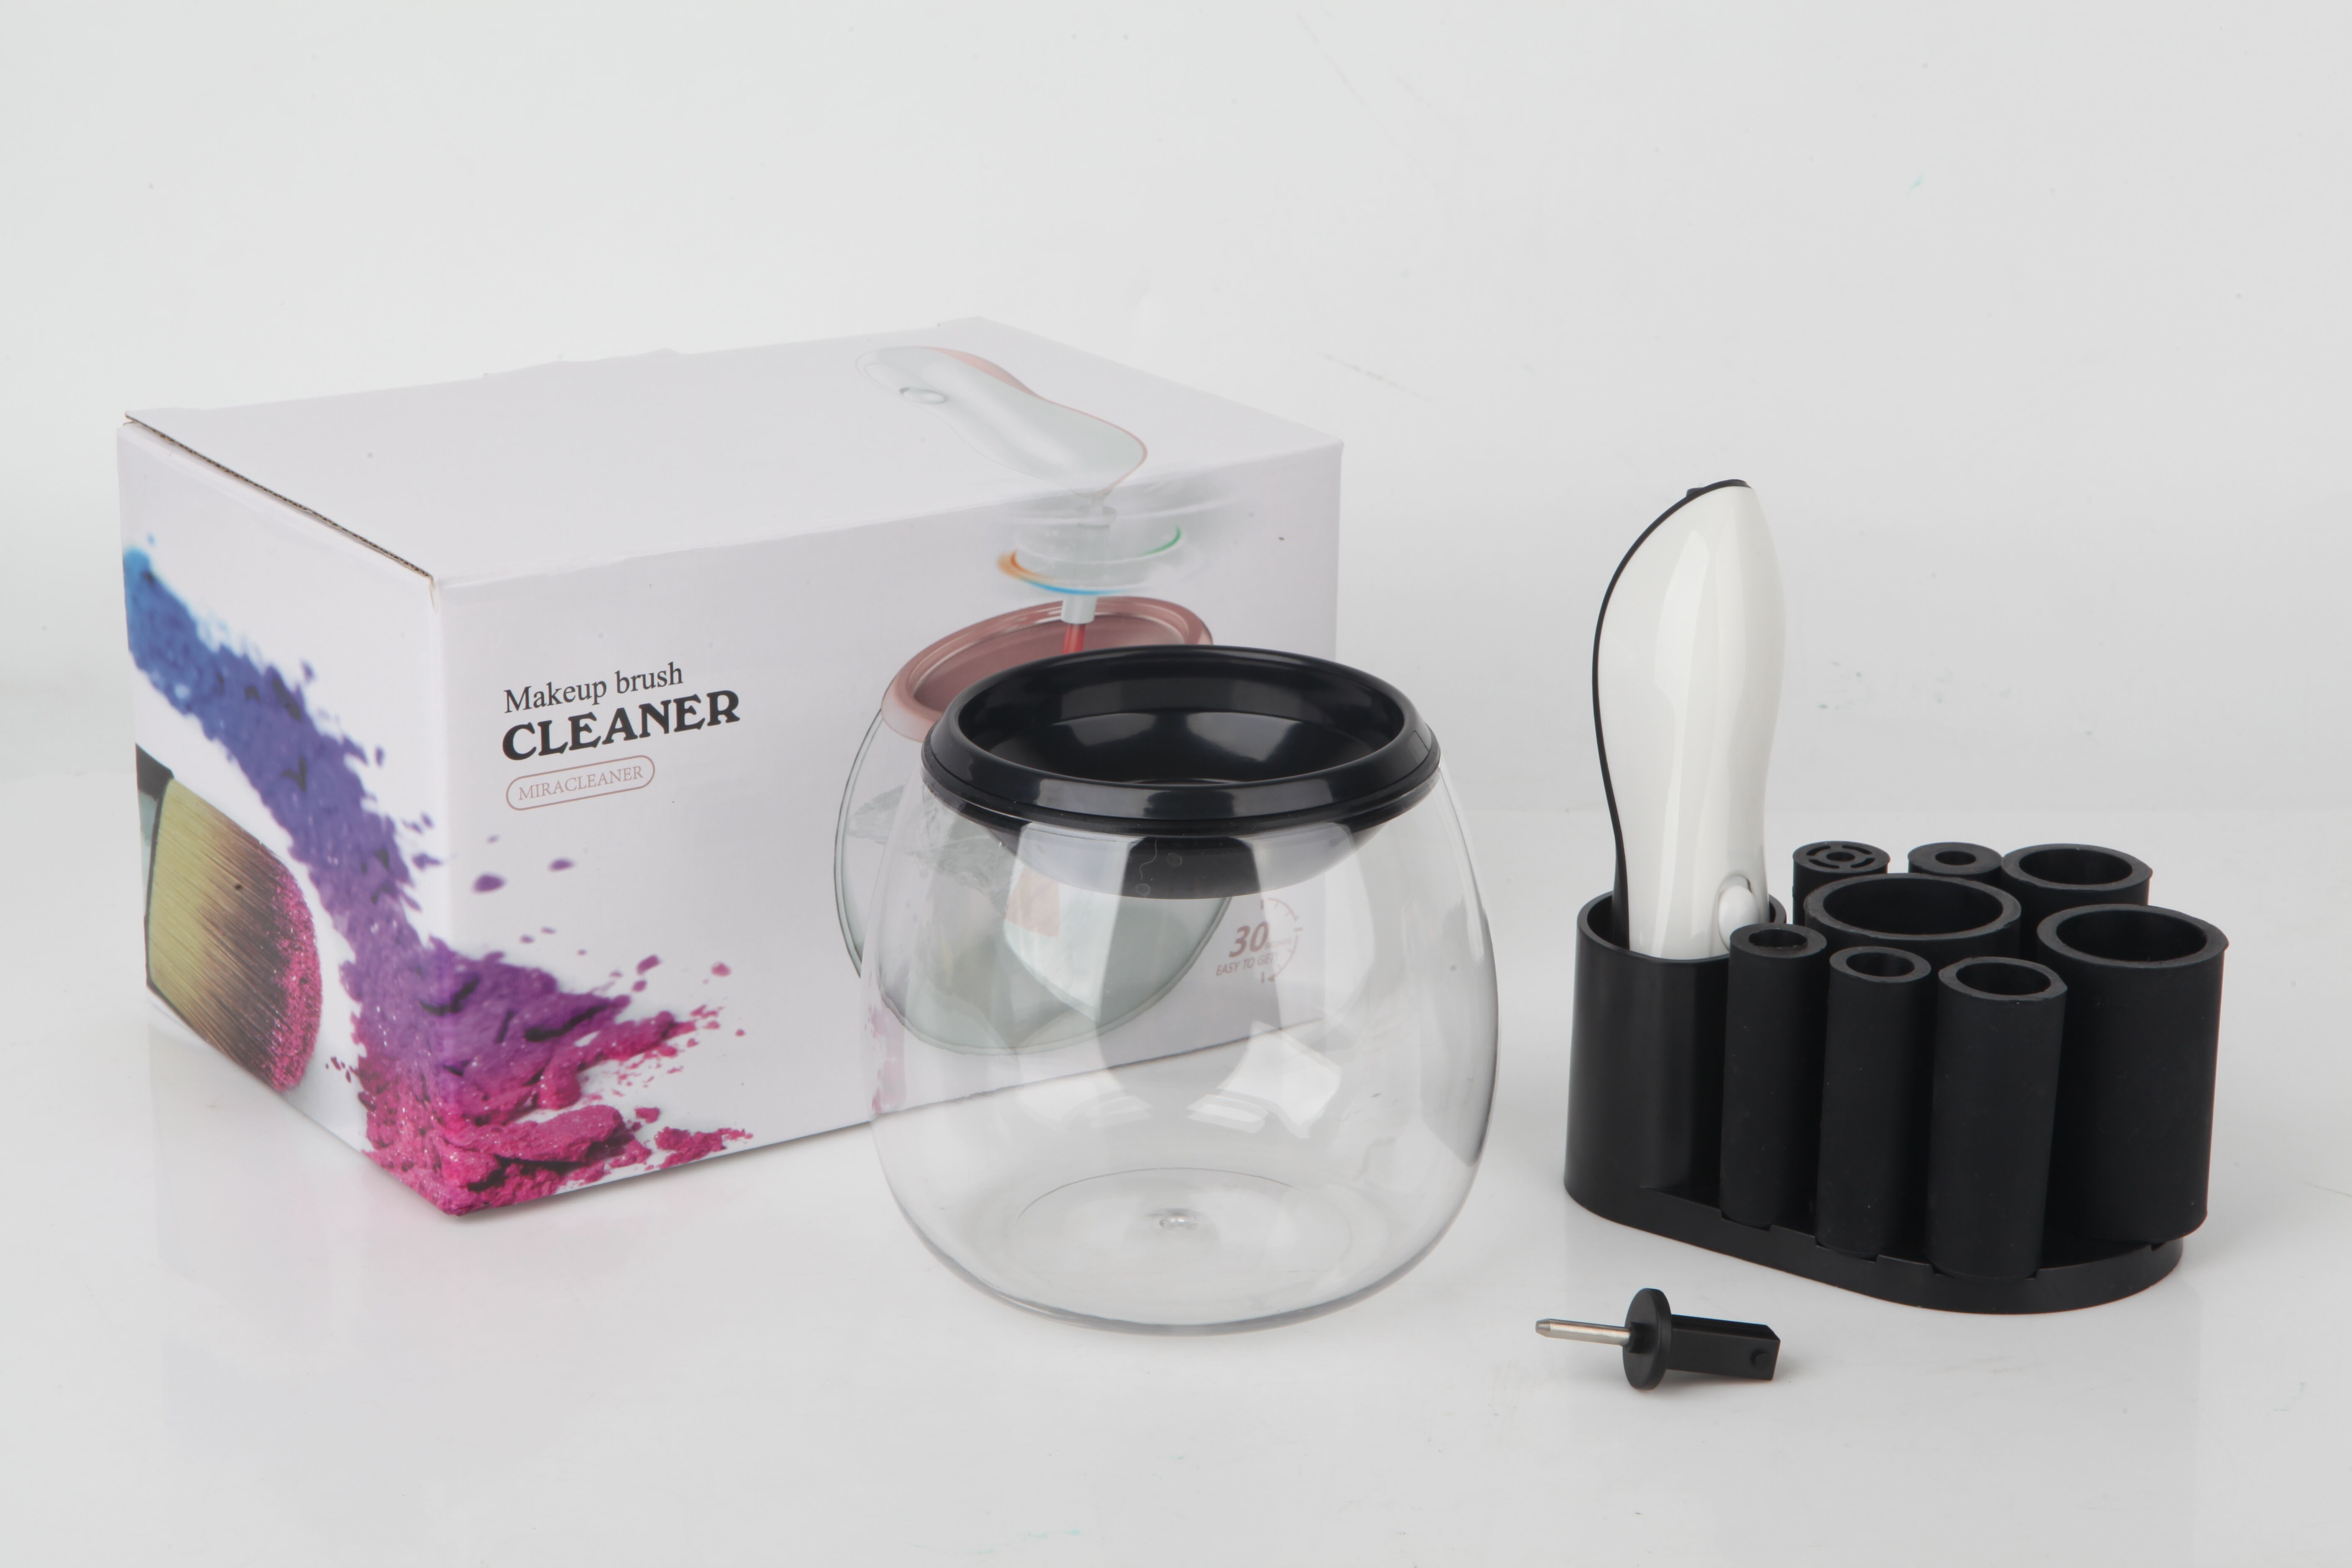 Makeup Brush Cleaner - Cleans and Dries All Makeup Brushes In Seconds 8 in 1